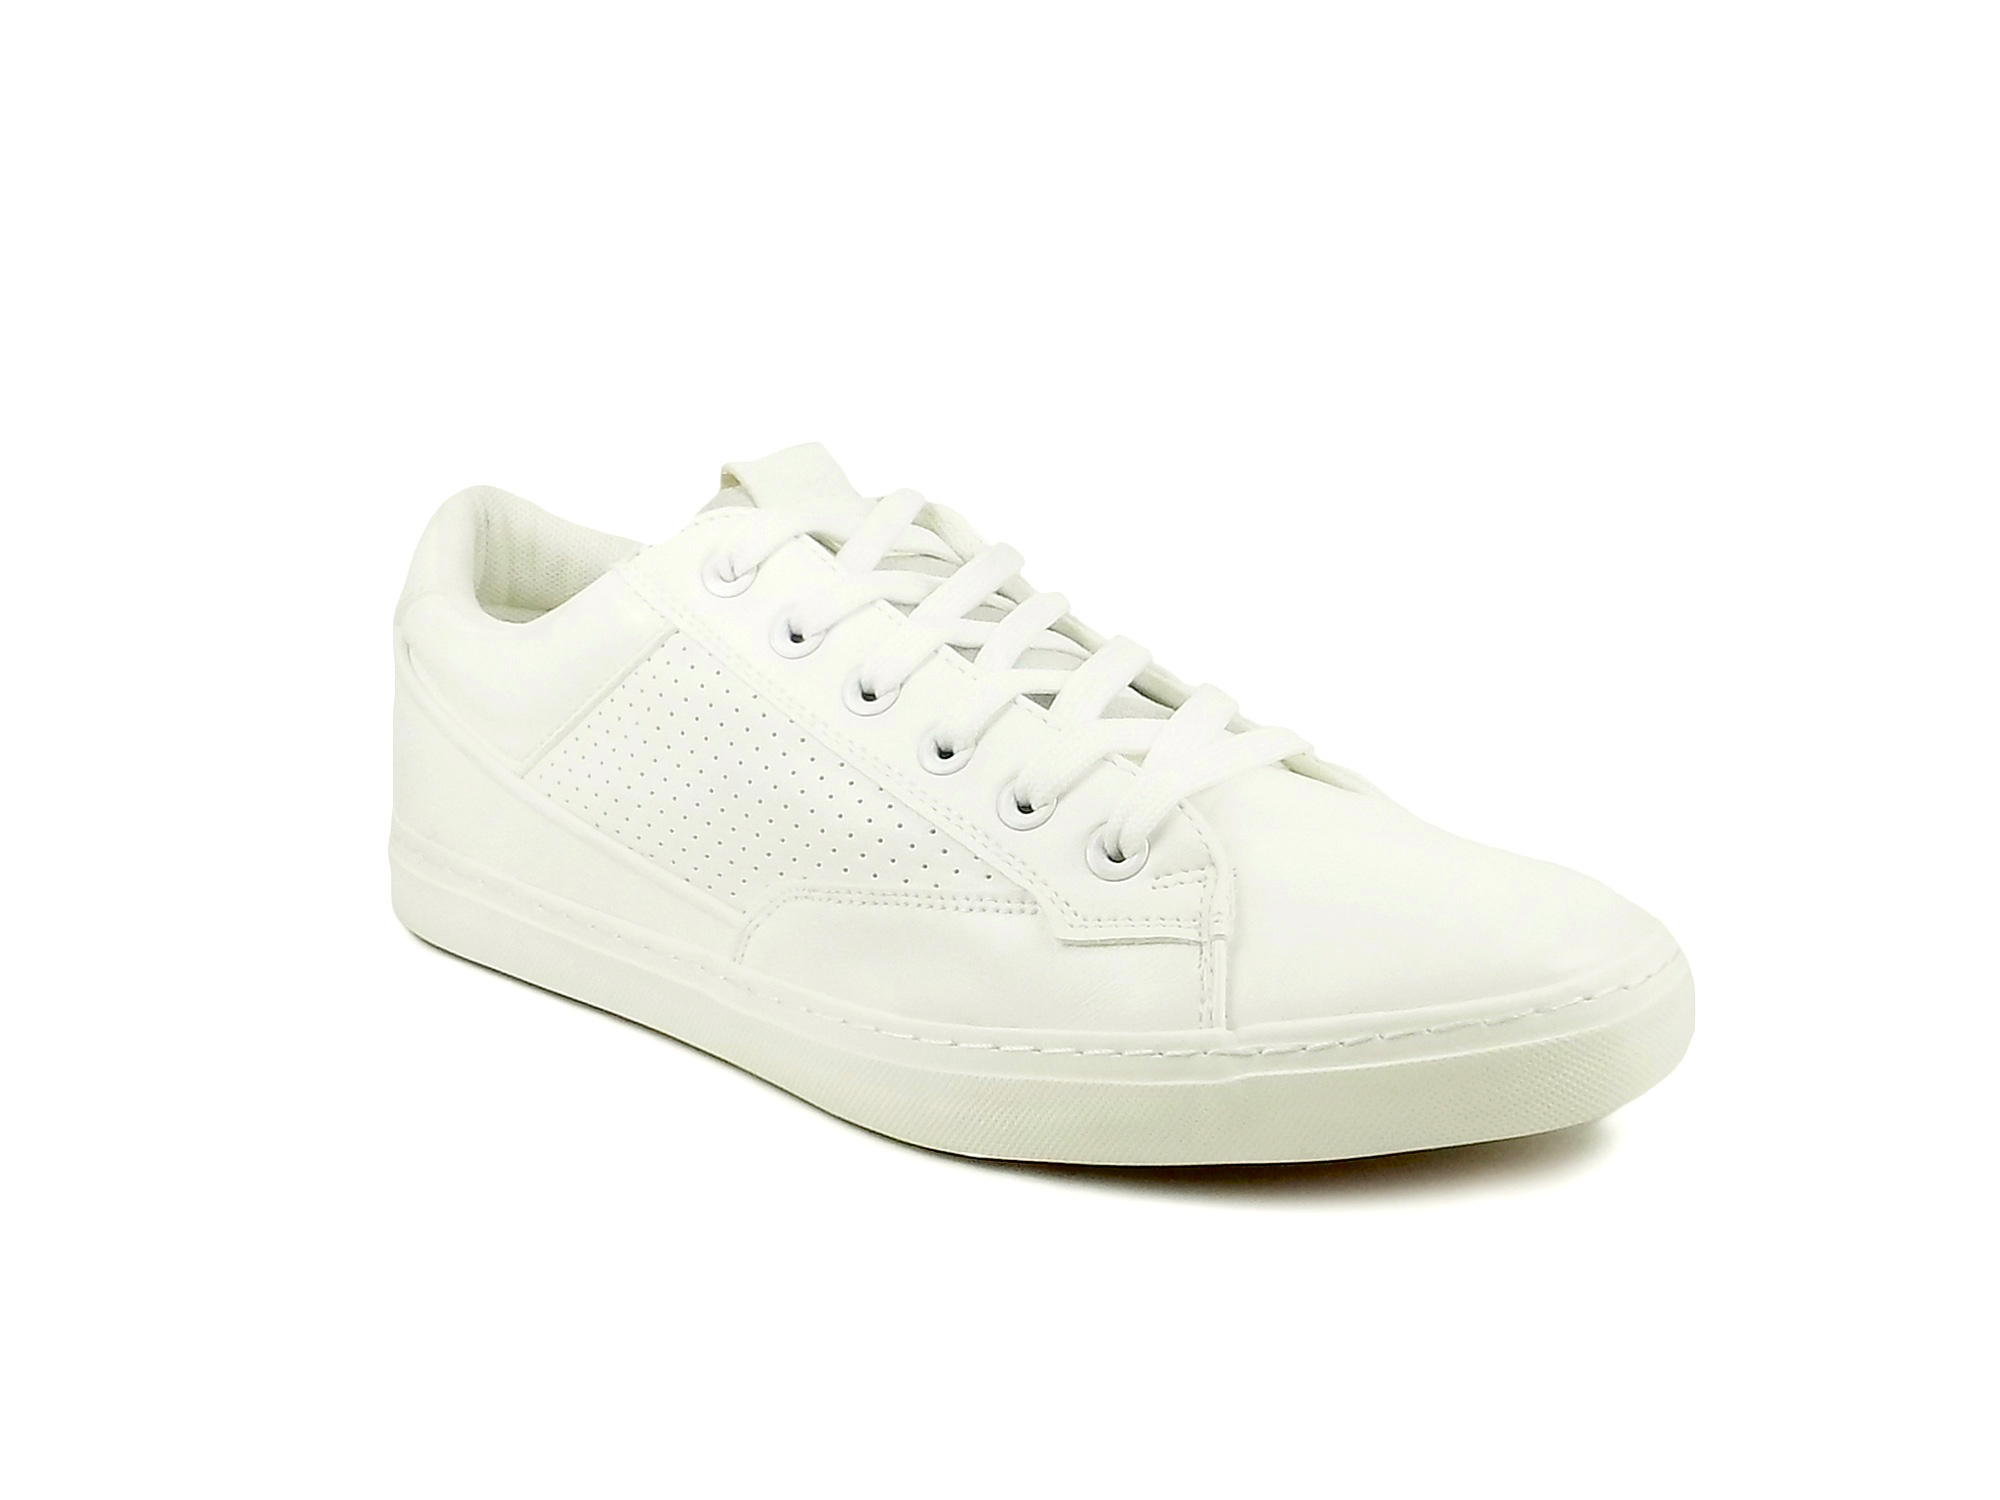 vantagesales Ripley White Leatherette Series Casual Shoes 76